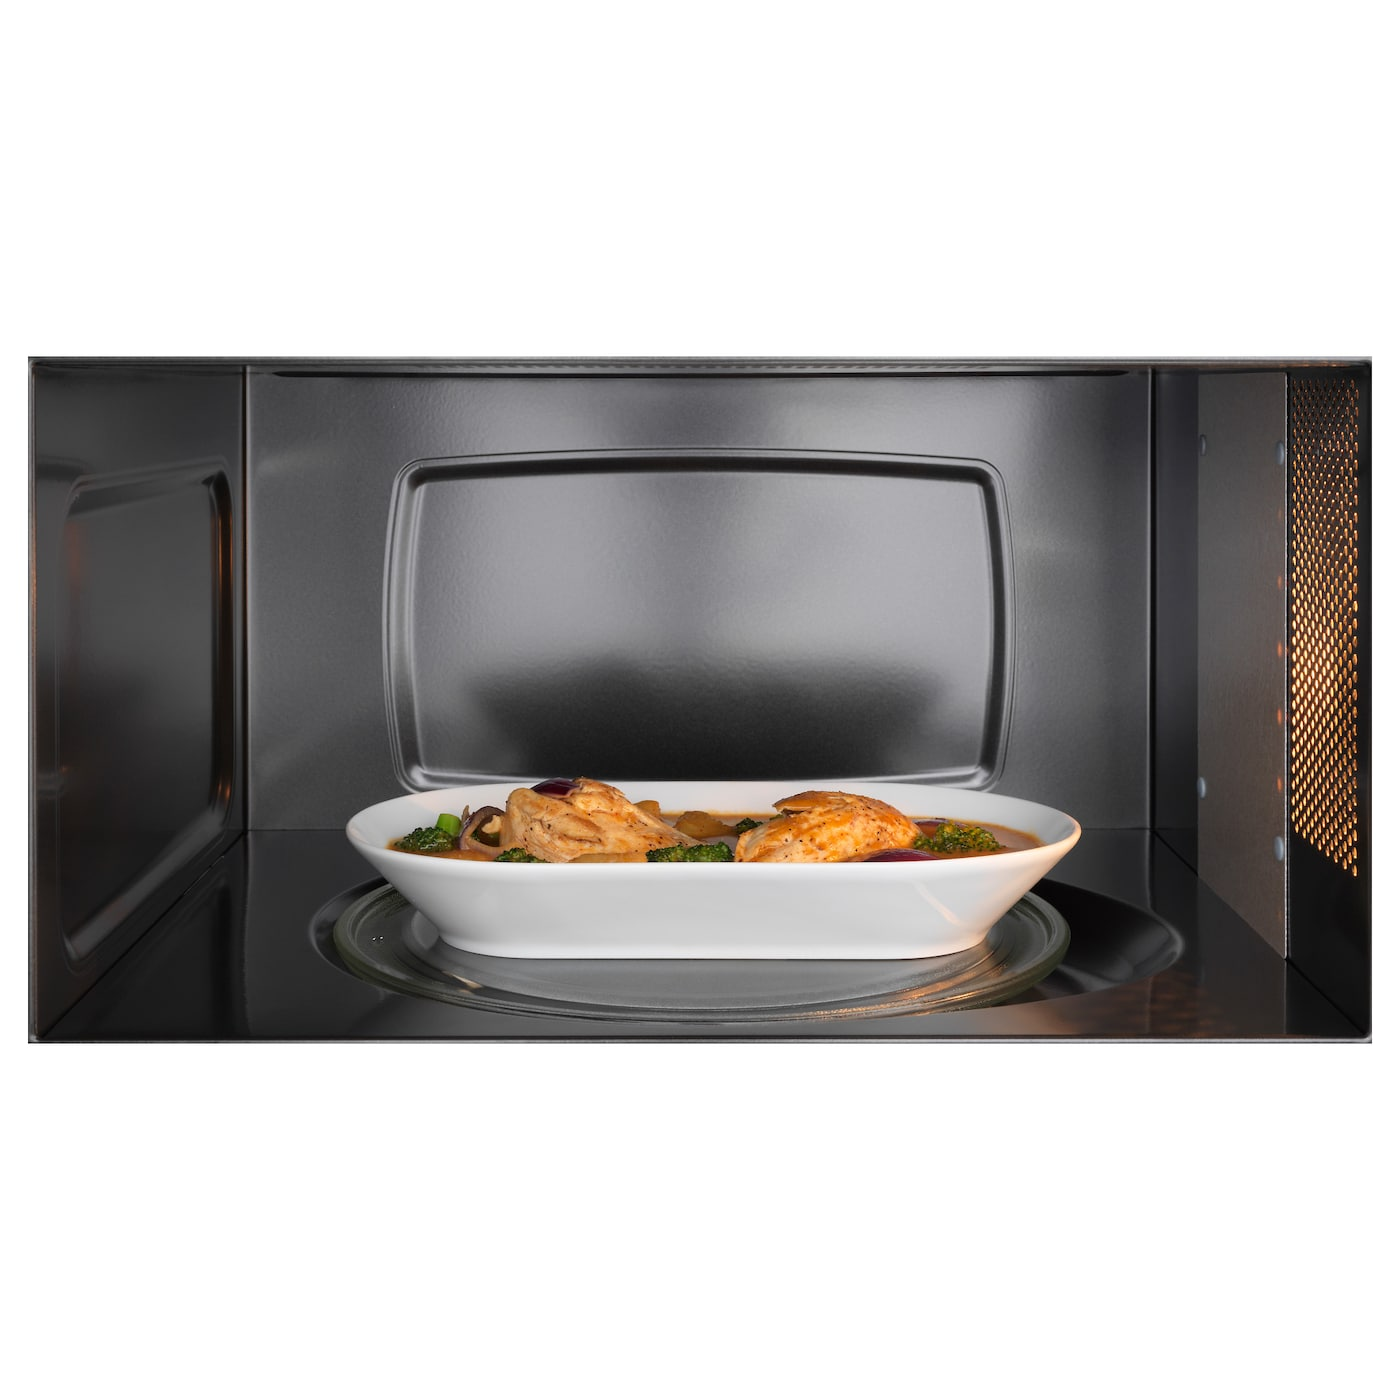 Framtid microwave oven stainless steel ikea for Who makes ikea microwaves